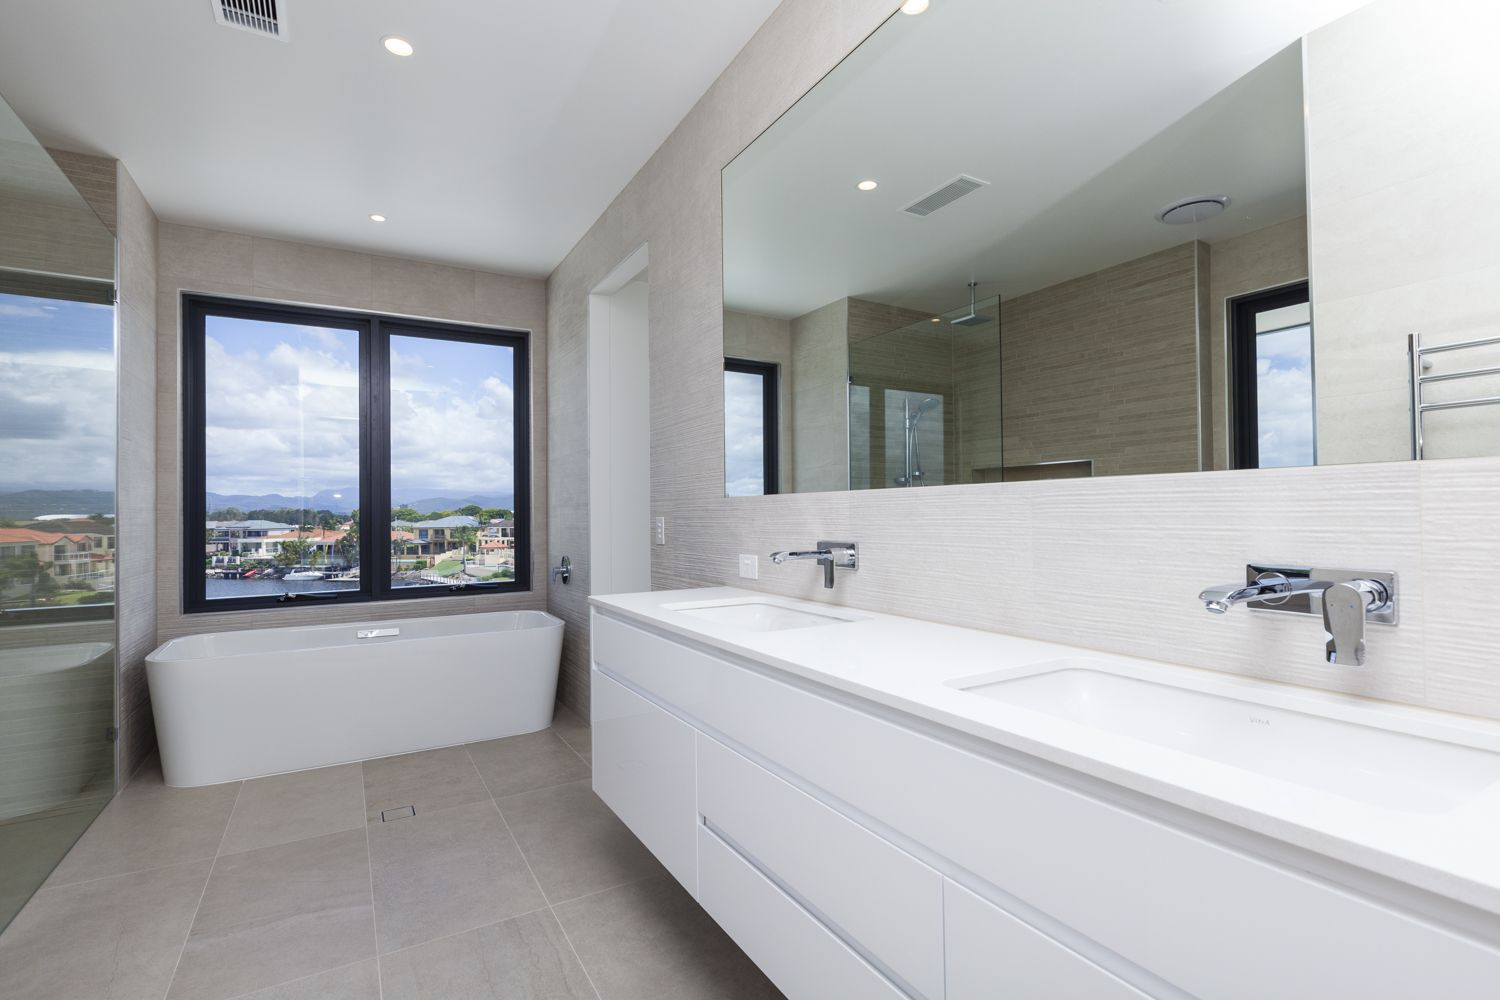 Sanctuary 28 Homes Bathroom Using Sandstone Look Tiles With Same